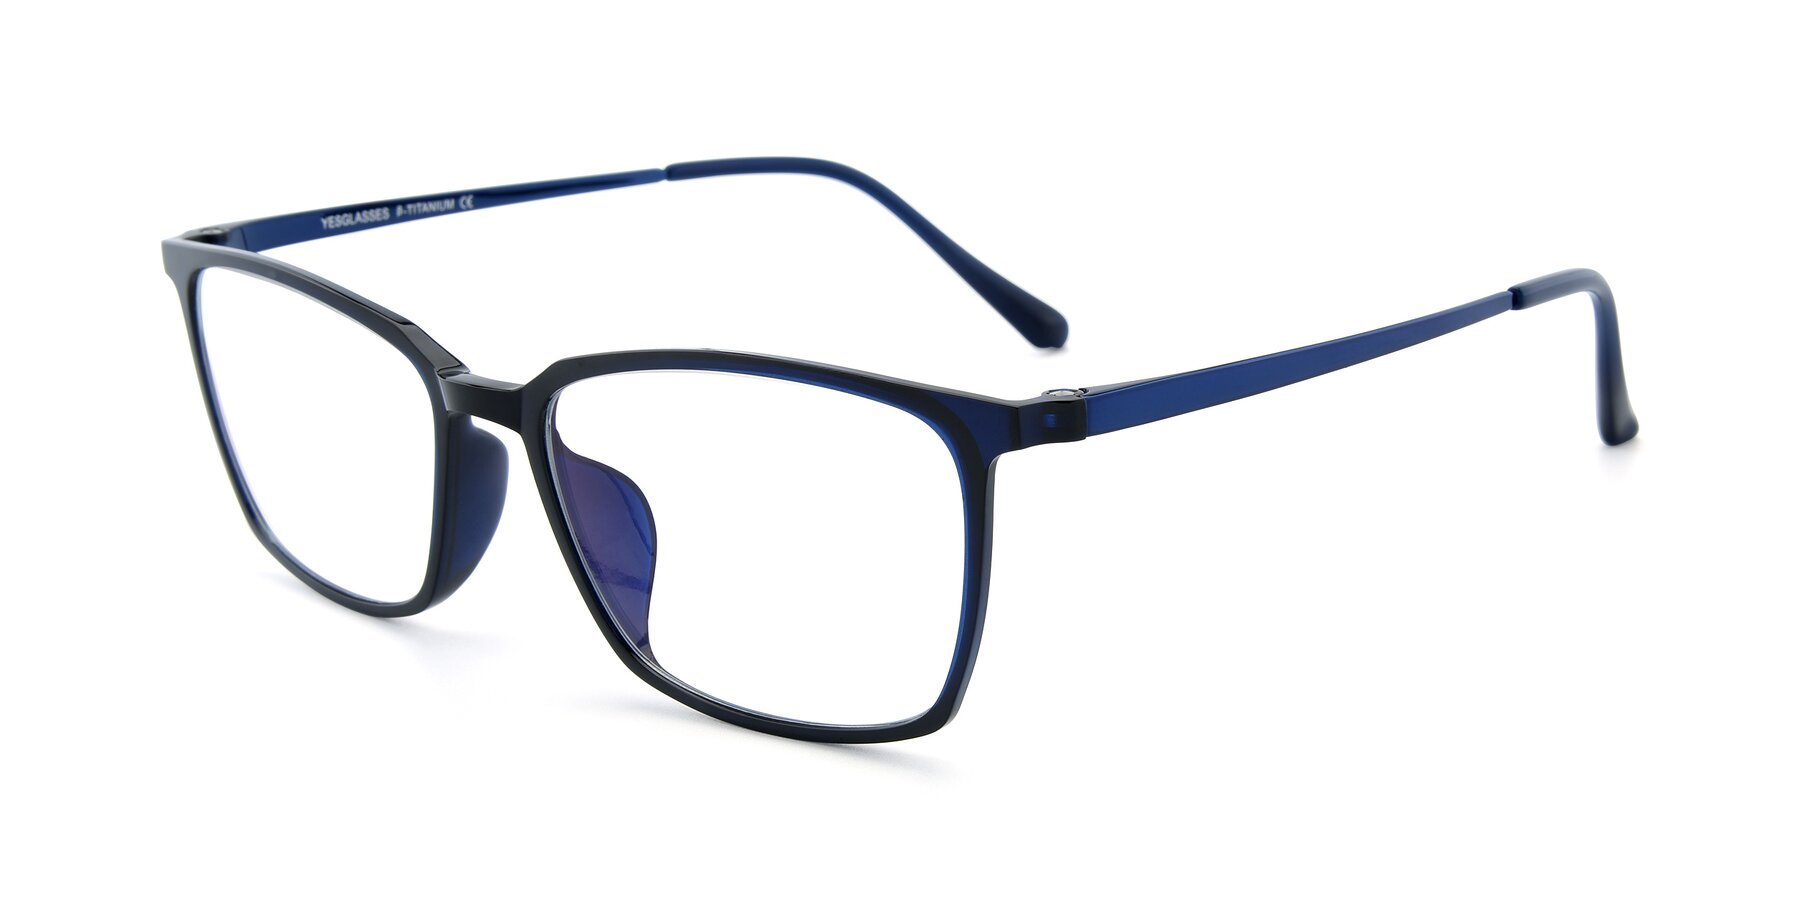 Angle of XC-5009 in Blue with Clear Blue Light Blocking Lenses